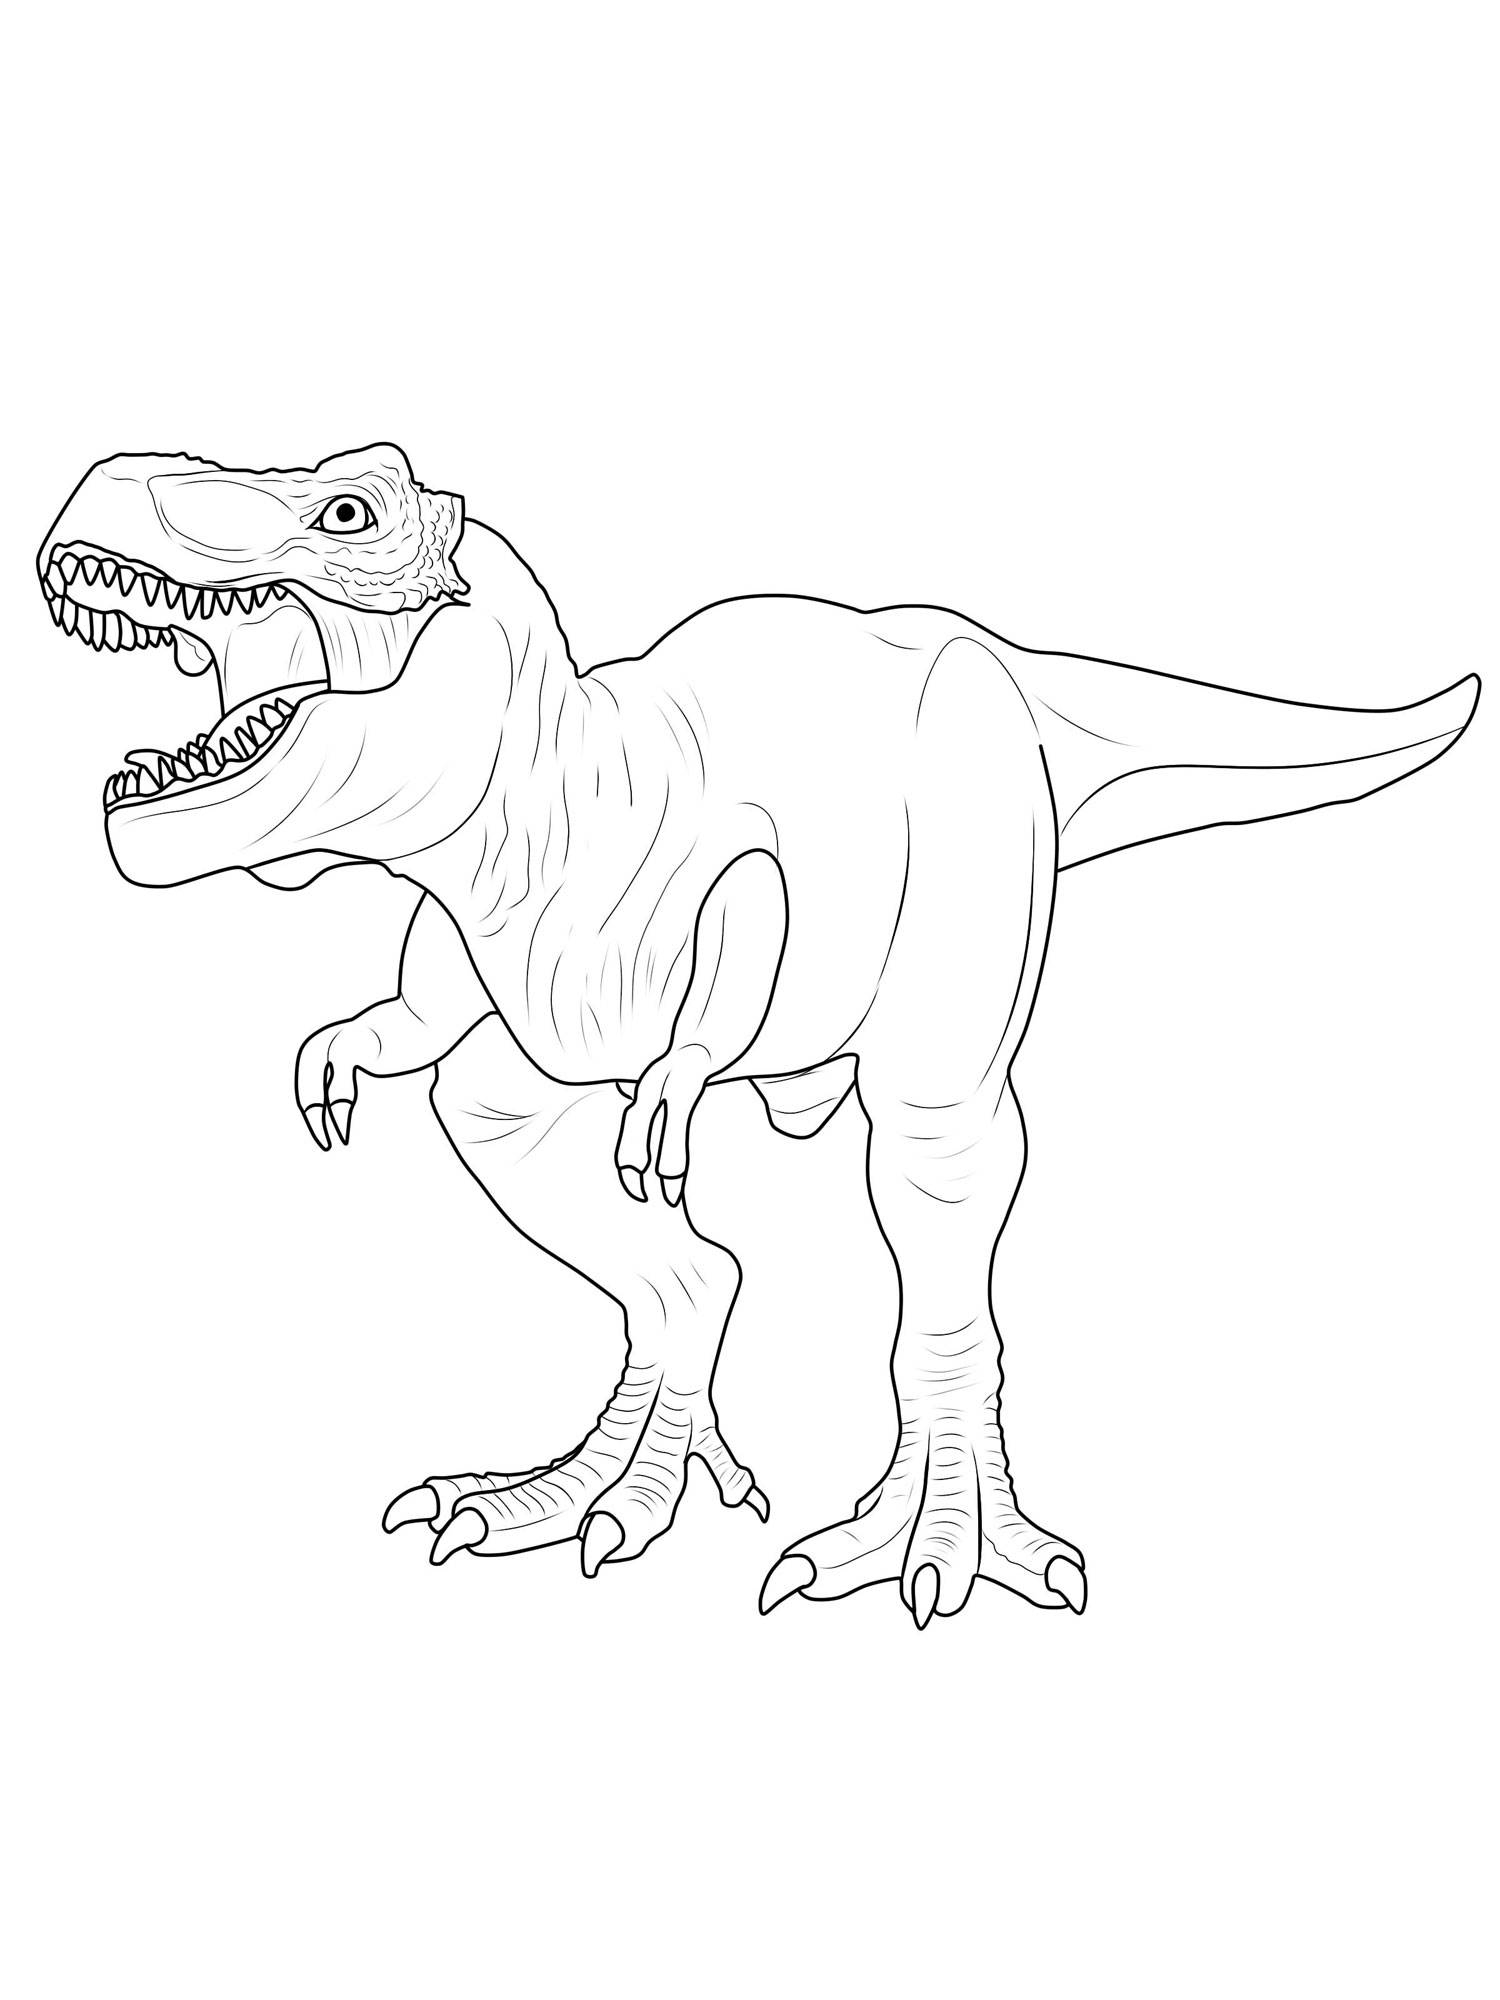 Ausmalbilder Dinosaurier Rex : 27 Tyrannosaurus Rex Coloring Page Printable Free Coloring Pages